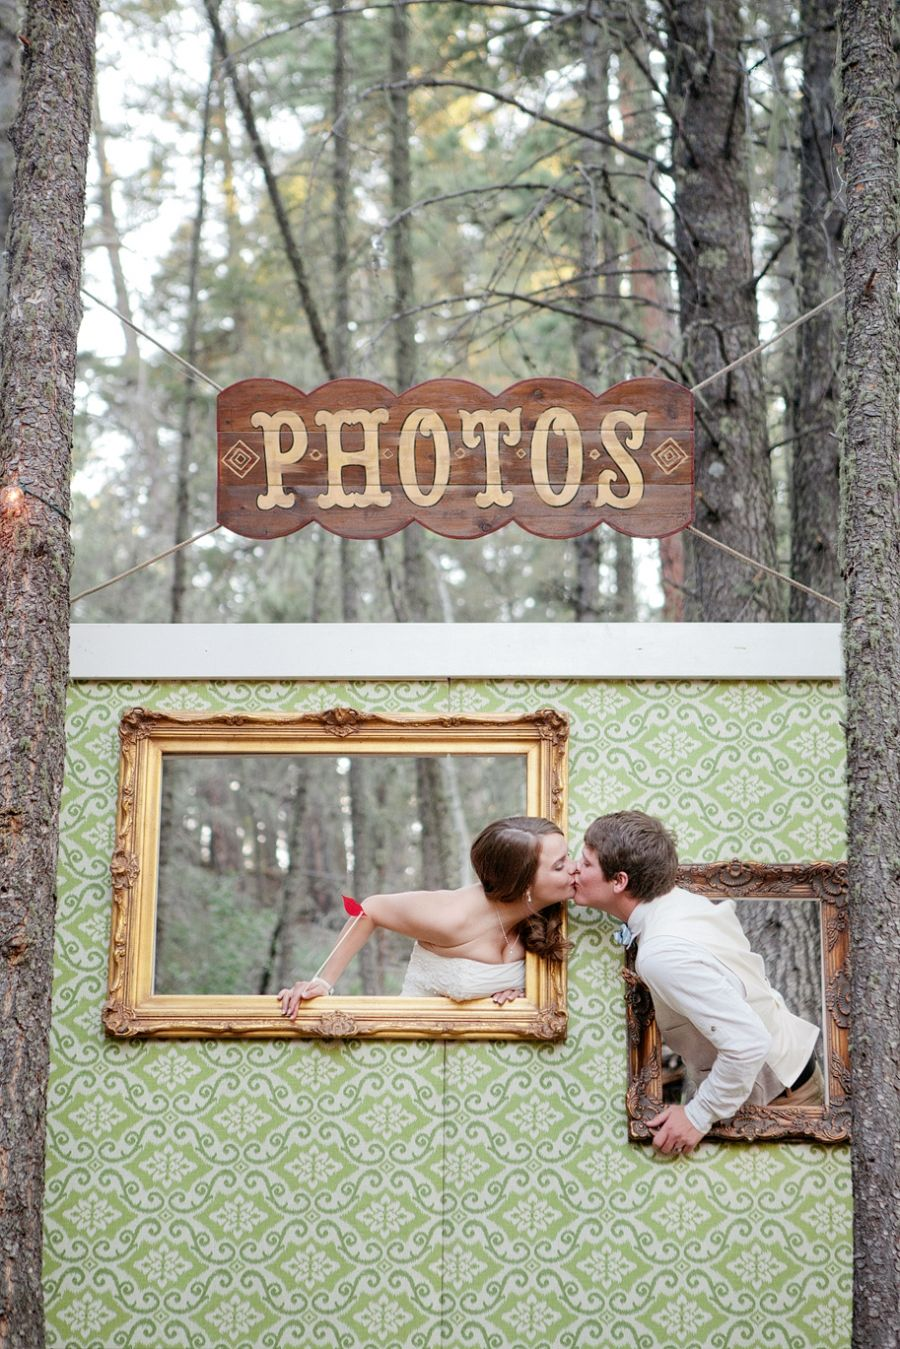 Such a cute idea create your own photobooth for the wedding we